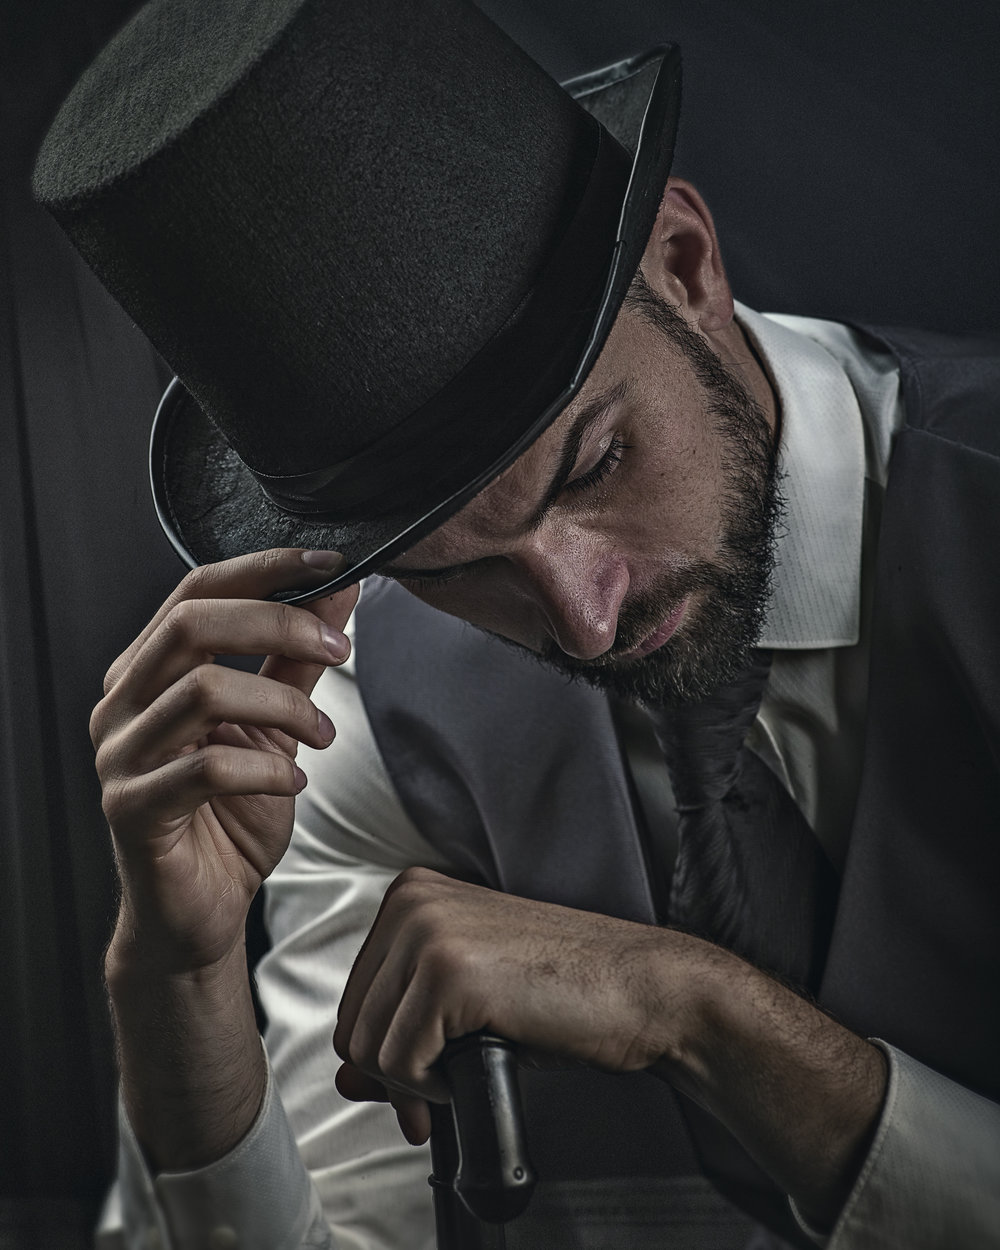 Every gentleman should know how to shave correctly